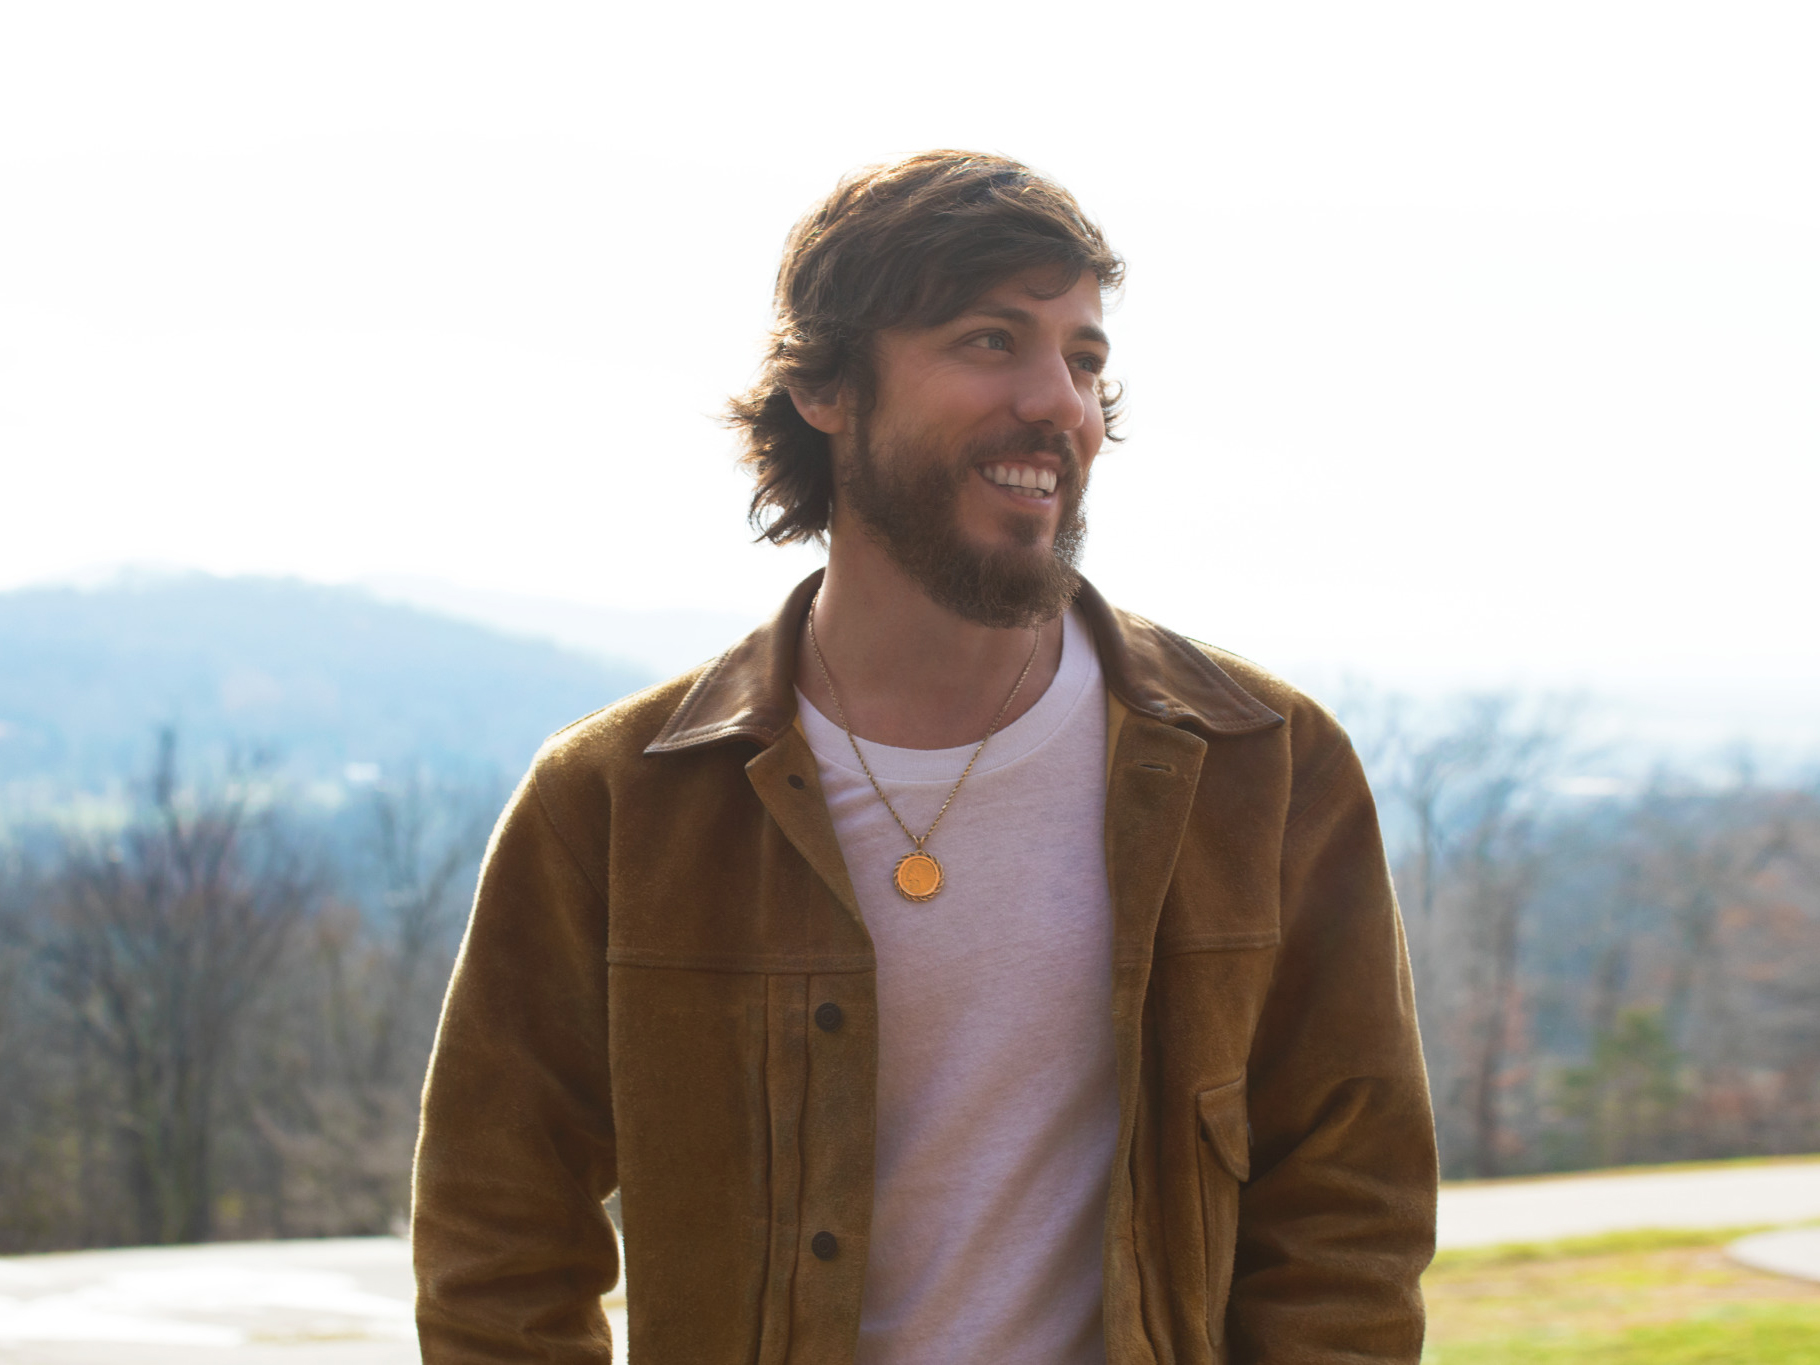 "CHRIS JANSON - Chris Janson is a platinum-selling, high-octane entertainer, multi-instrumentalist, award-winning singer/songwriter, and the youngest living member of the Grand Ole Opry. Janson's new song, ""Good Vibes,"" is the debut single from his forthcoming third studio album. His sophomore album, Everybody, produced his second No. 1 hit single, ""Fix A Drink,"" the chart-topping follow-up to his No. 1 debut smash ""Buy Me A Boat."" His CMA-nominated song, ""Drunk Girl,"" won a 2019 ACM Award for ""Video Of The Year,"" has been named Music Row's ""Song of the Year,"" and has been called ""the most important song to come out of Nashville in years."" Janson is the only artist in 2018 who opened the CMA Awards and closed out the ACM Awards, with what Rolling Stone called a ""must-see performance."" Janson continues to sell-out shows on his headlining ""Waitin' on 5 Tour,"" and has been announced as direct support for Chris Young's ""Raised on Country Tour."" For more information, visit www.chrisjanson.com/."